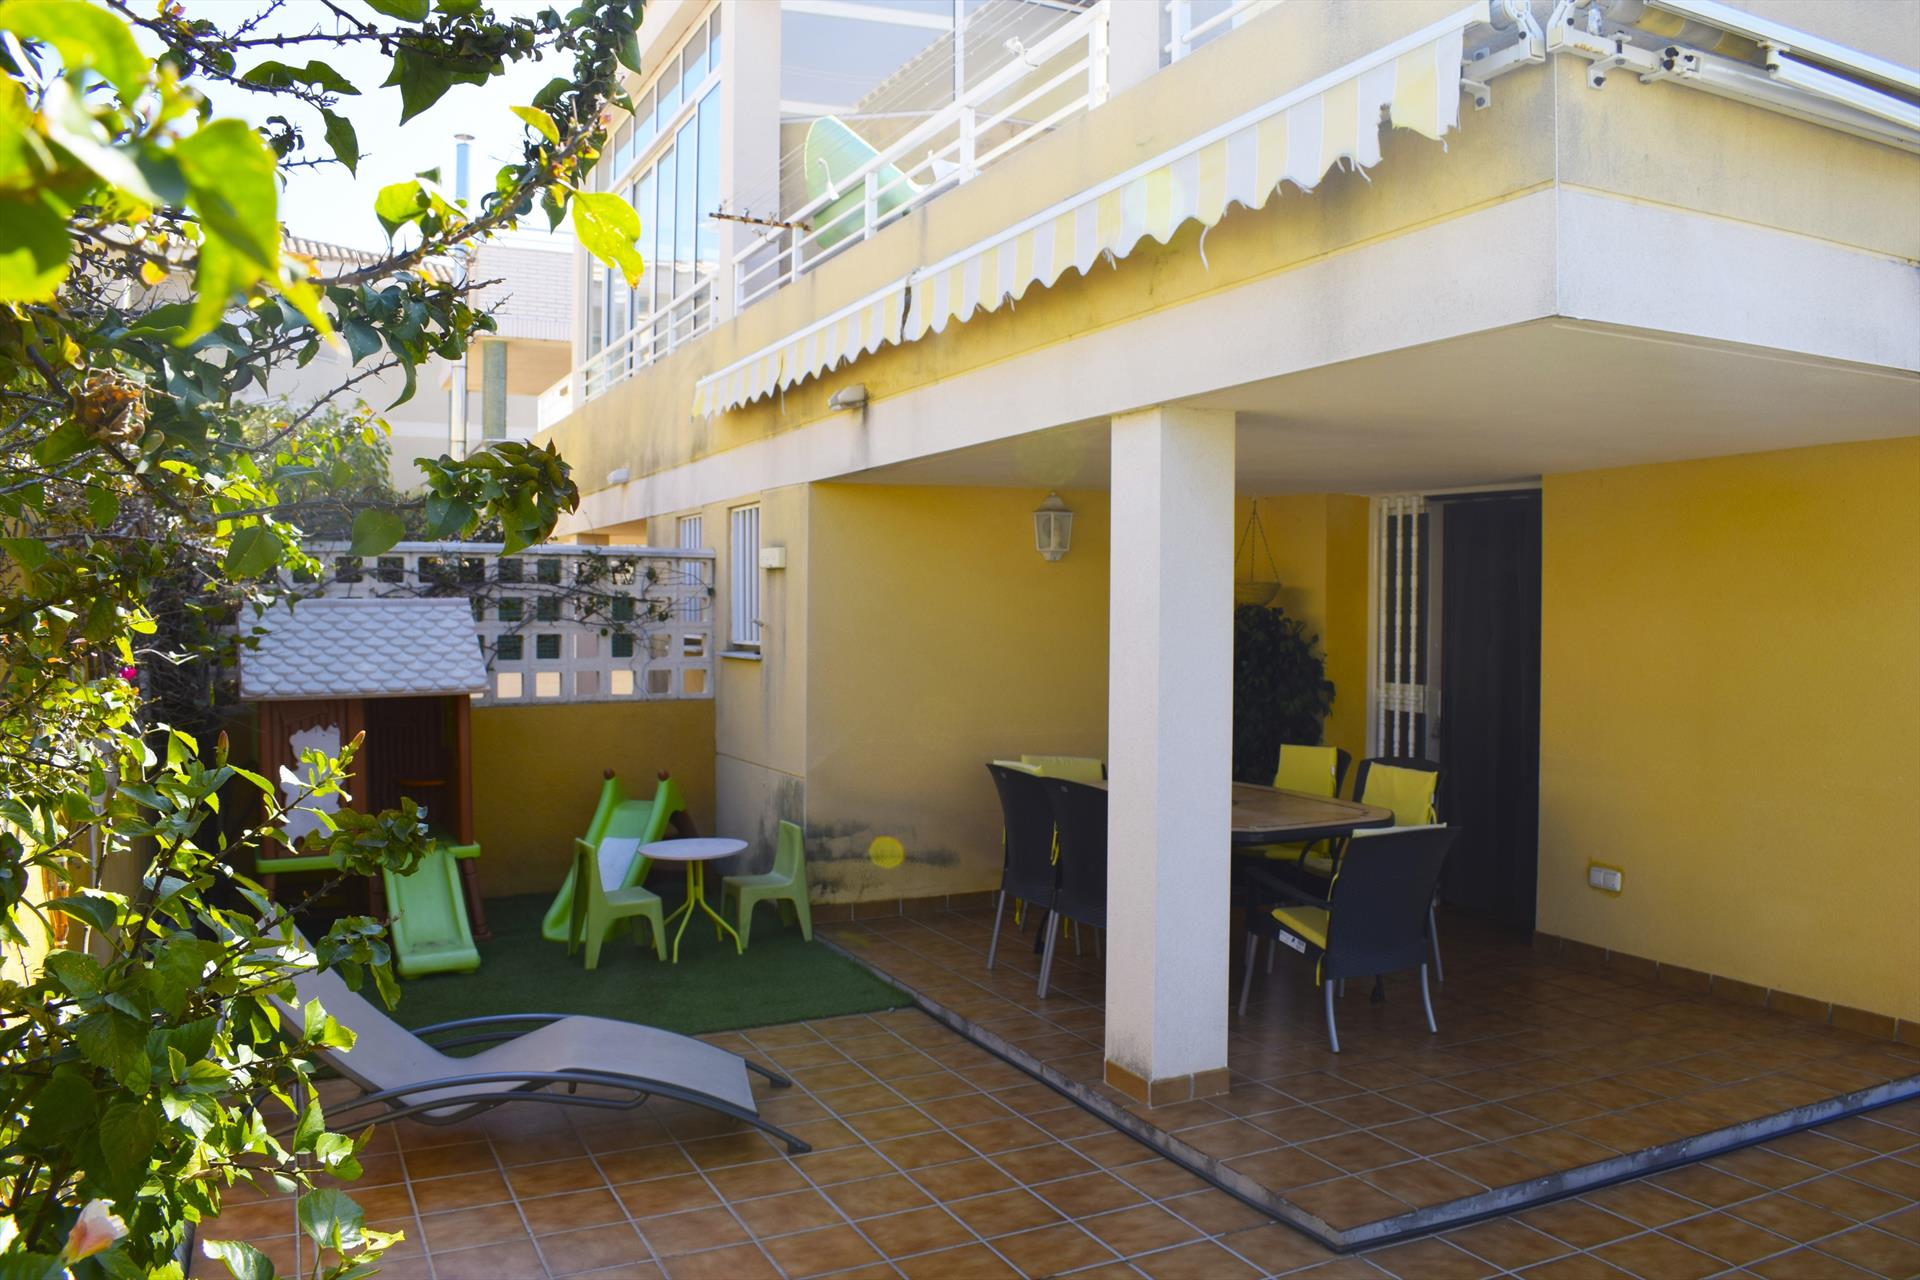 PB1321 Plataner Kiko Playa, Modern and comfortable apartment in Oliva, on the Costa Blanca, Spain for 4 persons.....